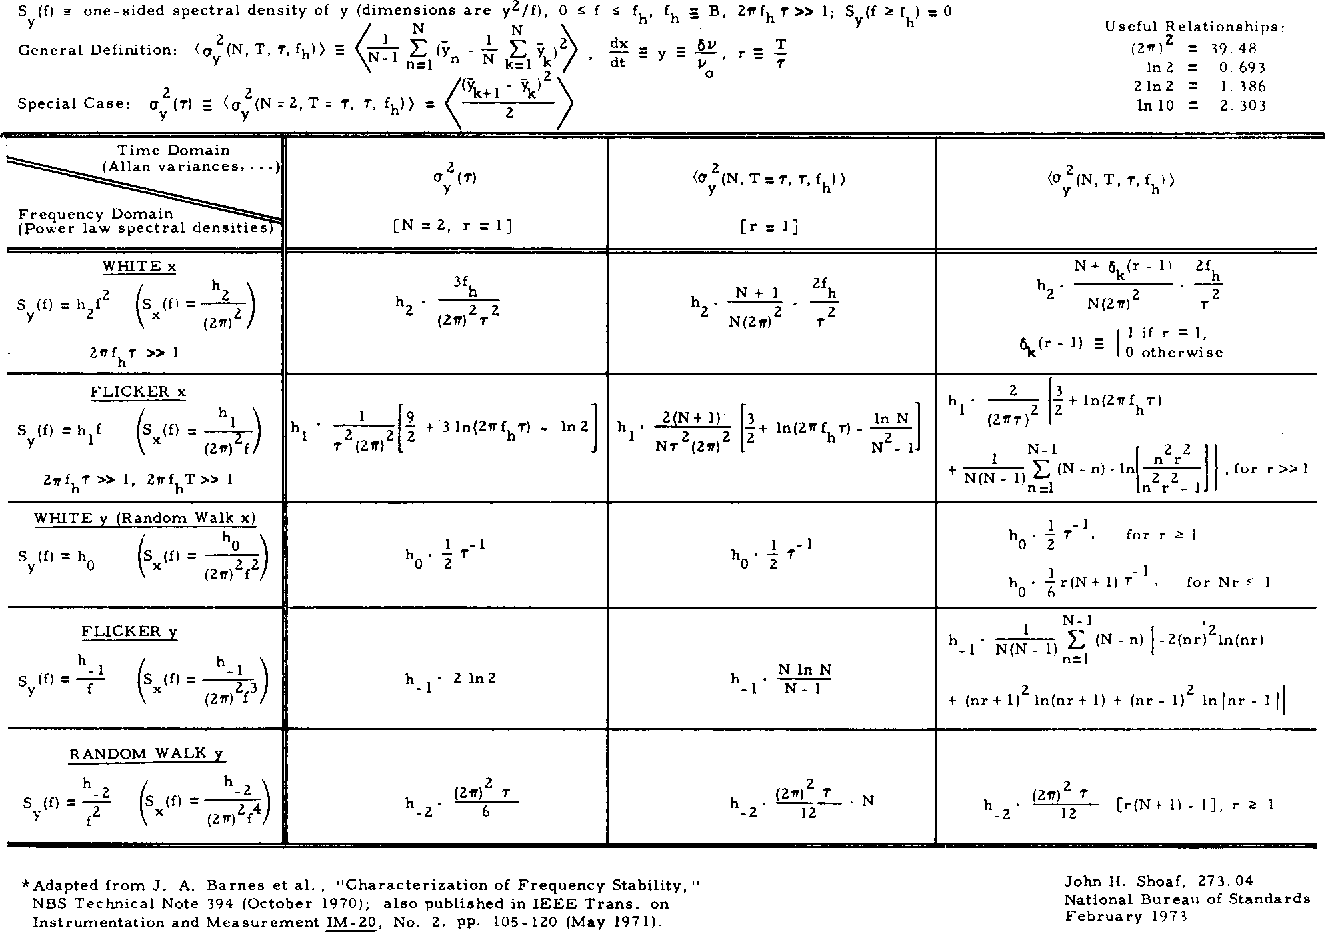 Table 8 1 from CHAPTER 8 STATISTICS OF TIME AND FREQUENCY DATA